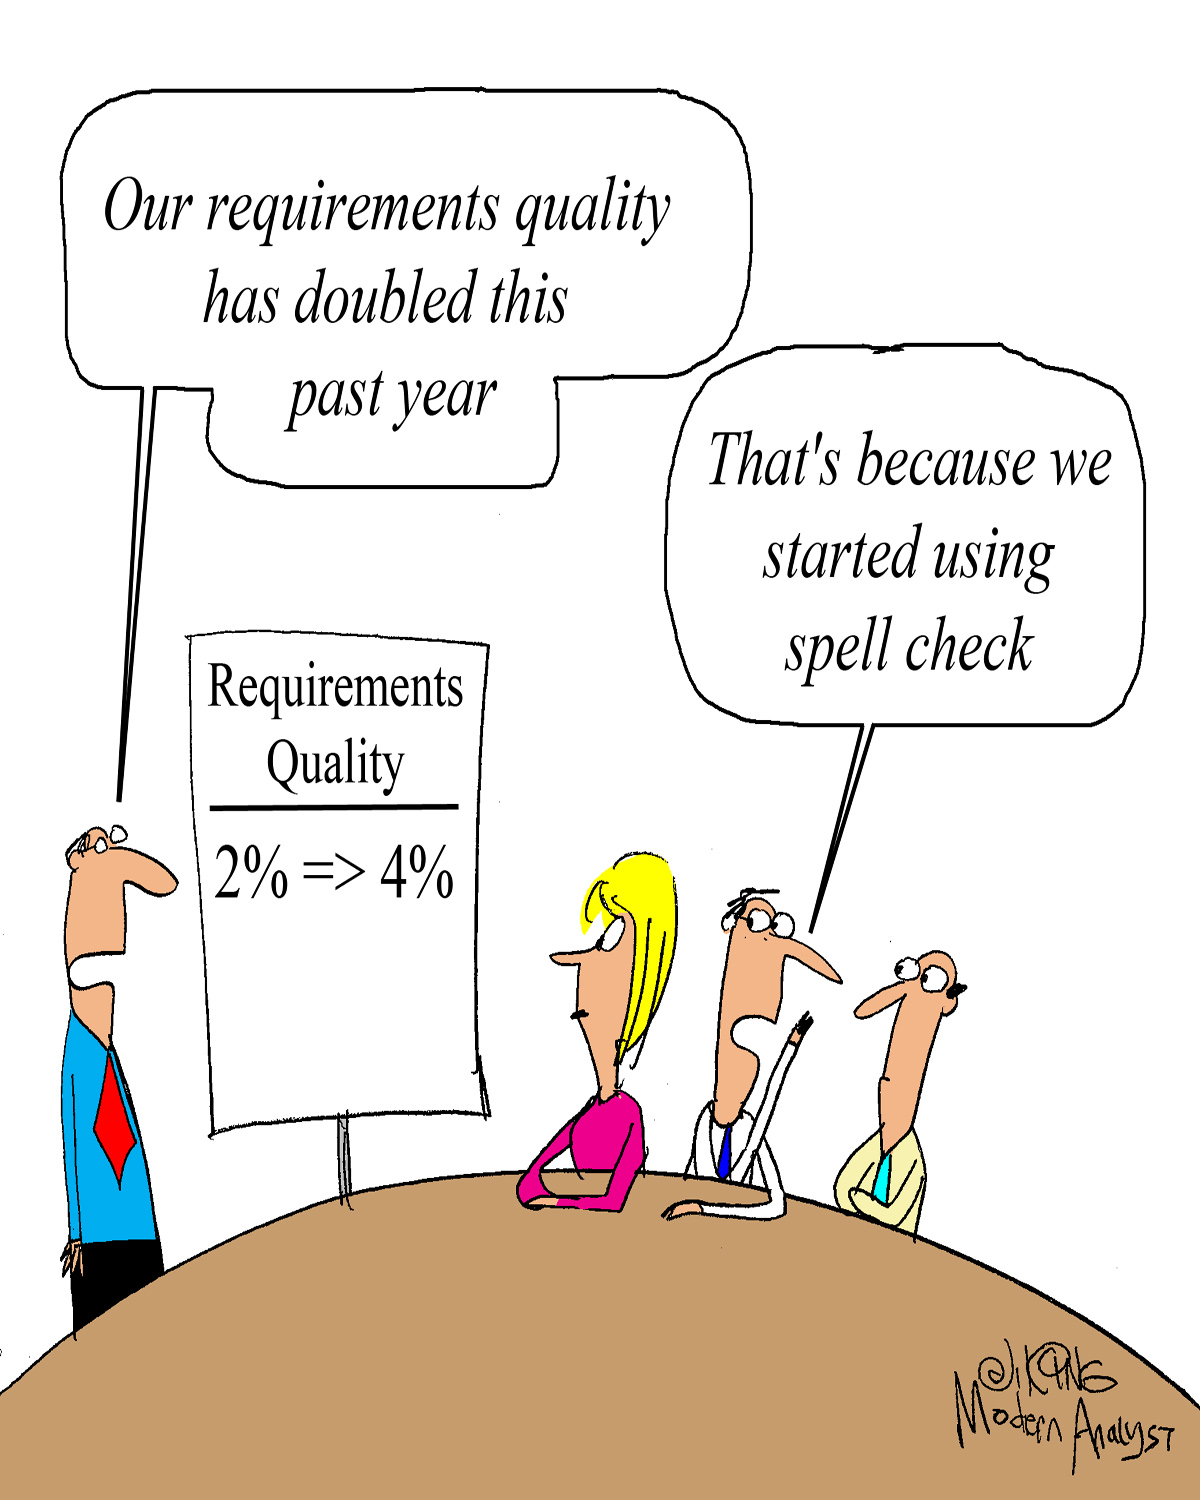 Humor - Cartoon: How to Increase Requirements Quality